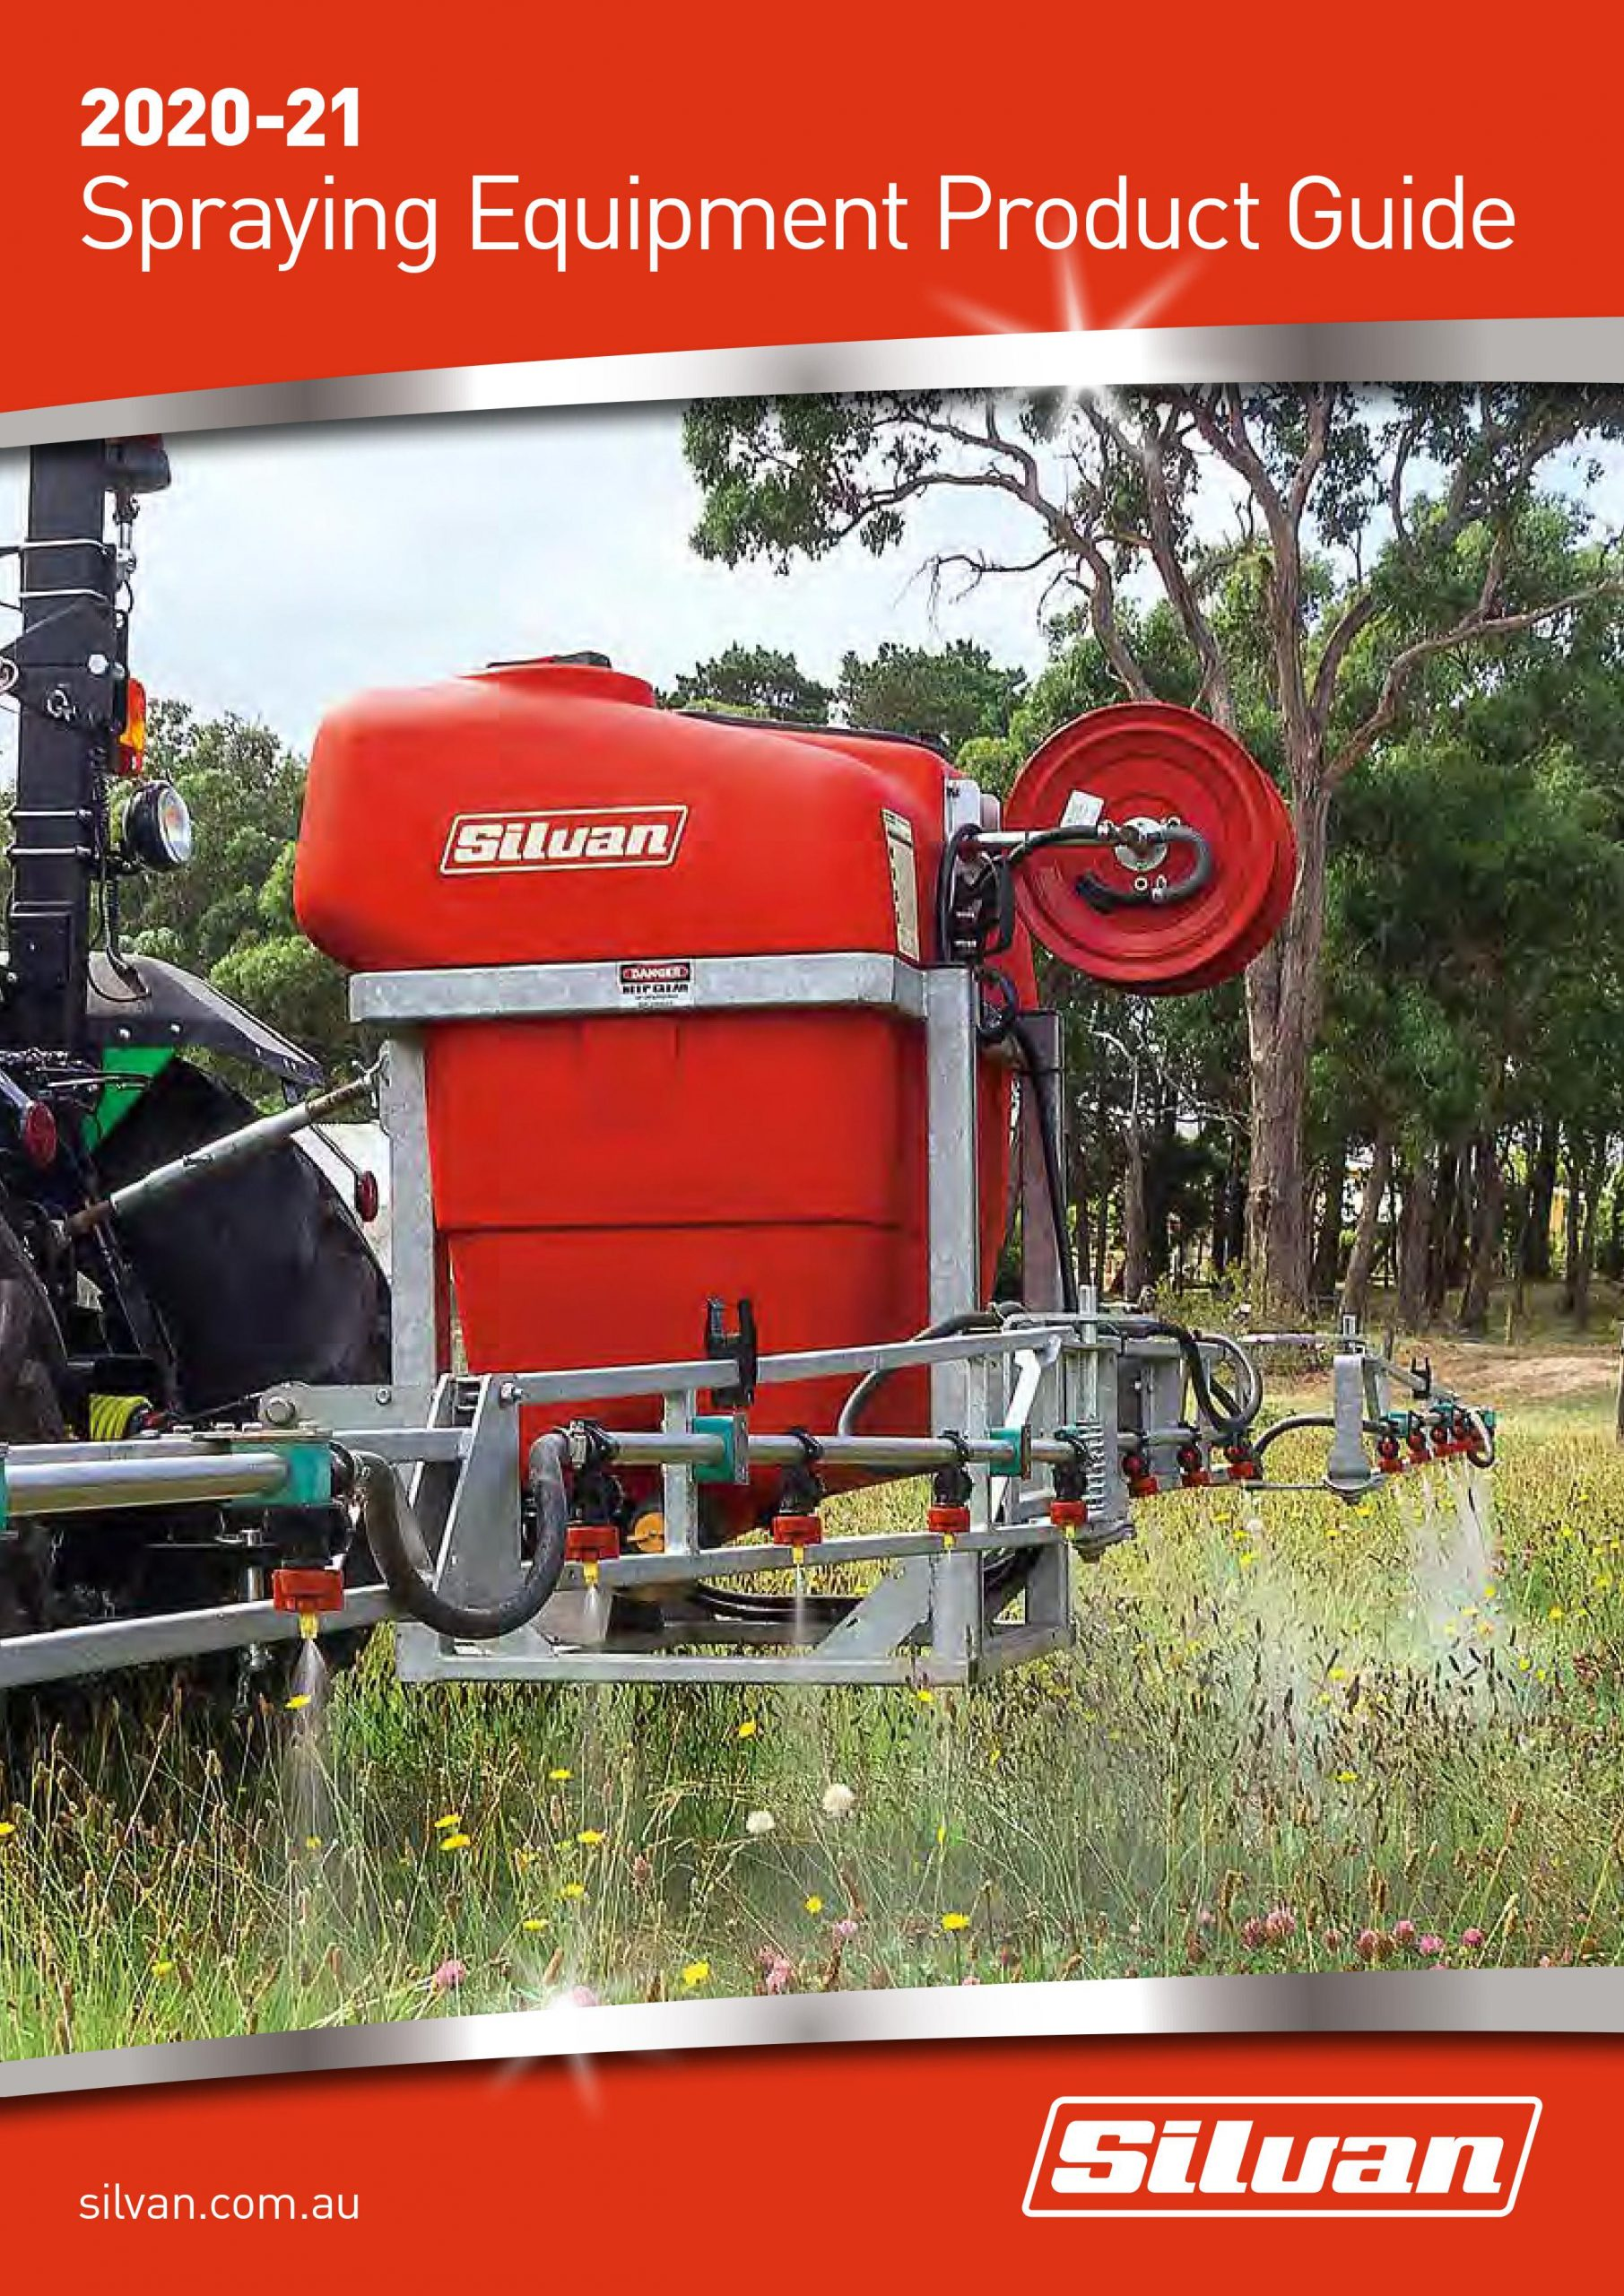 2020-21-Spraying-Equipment-Product-Guide